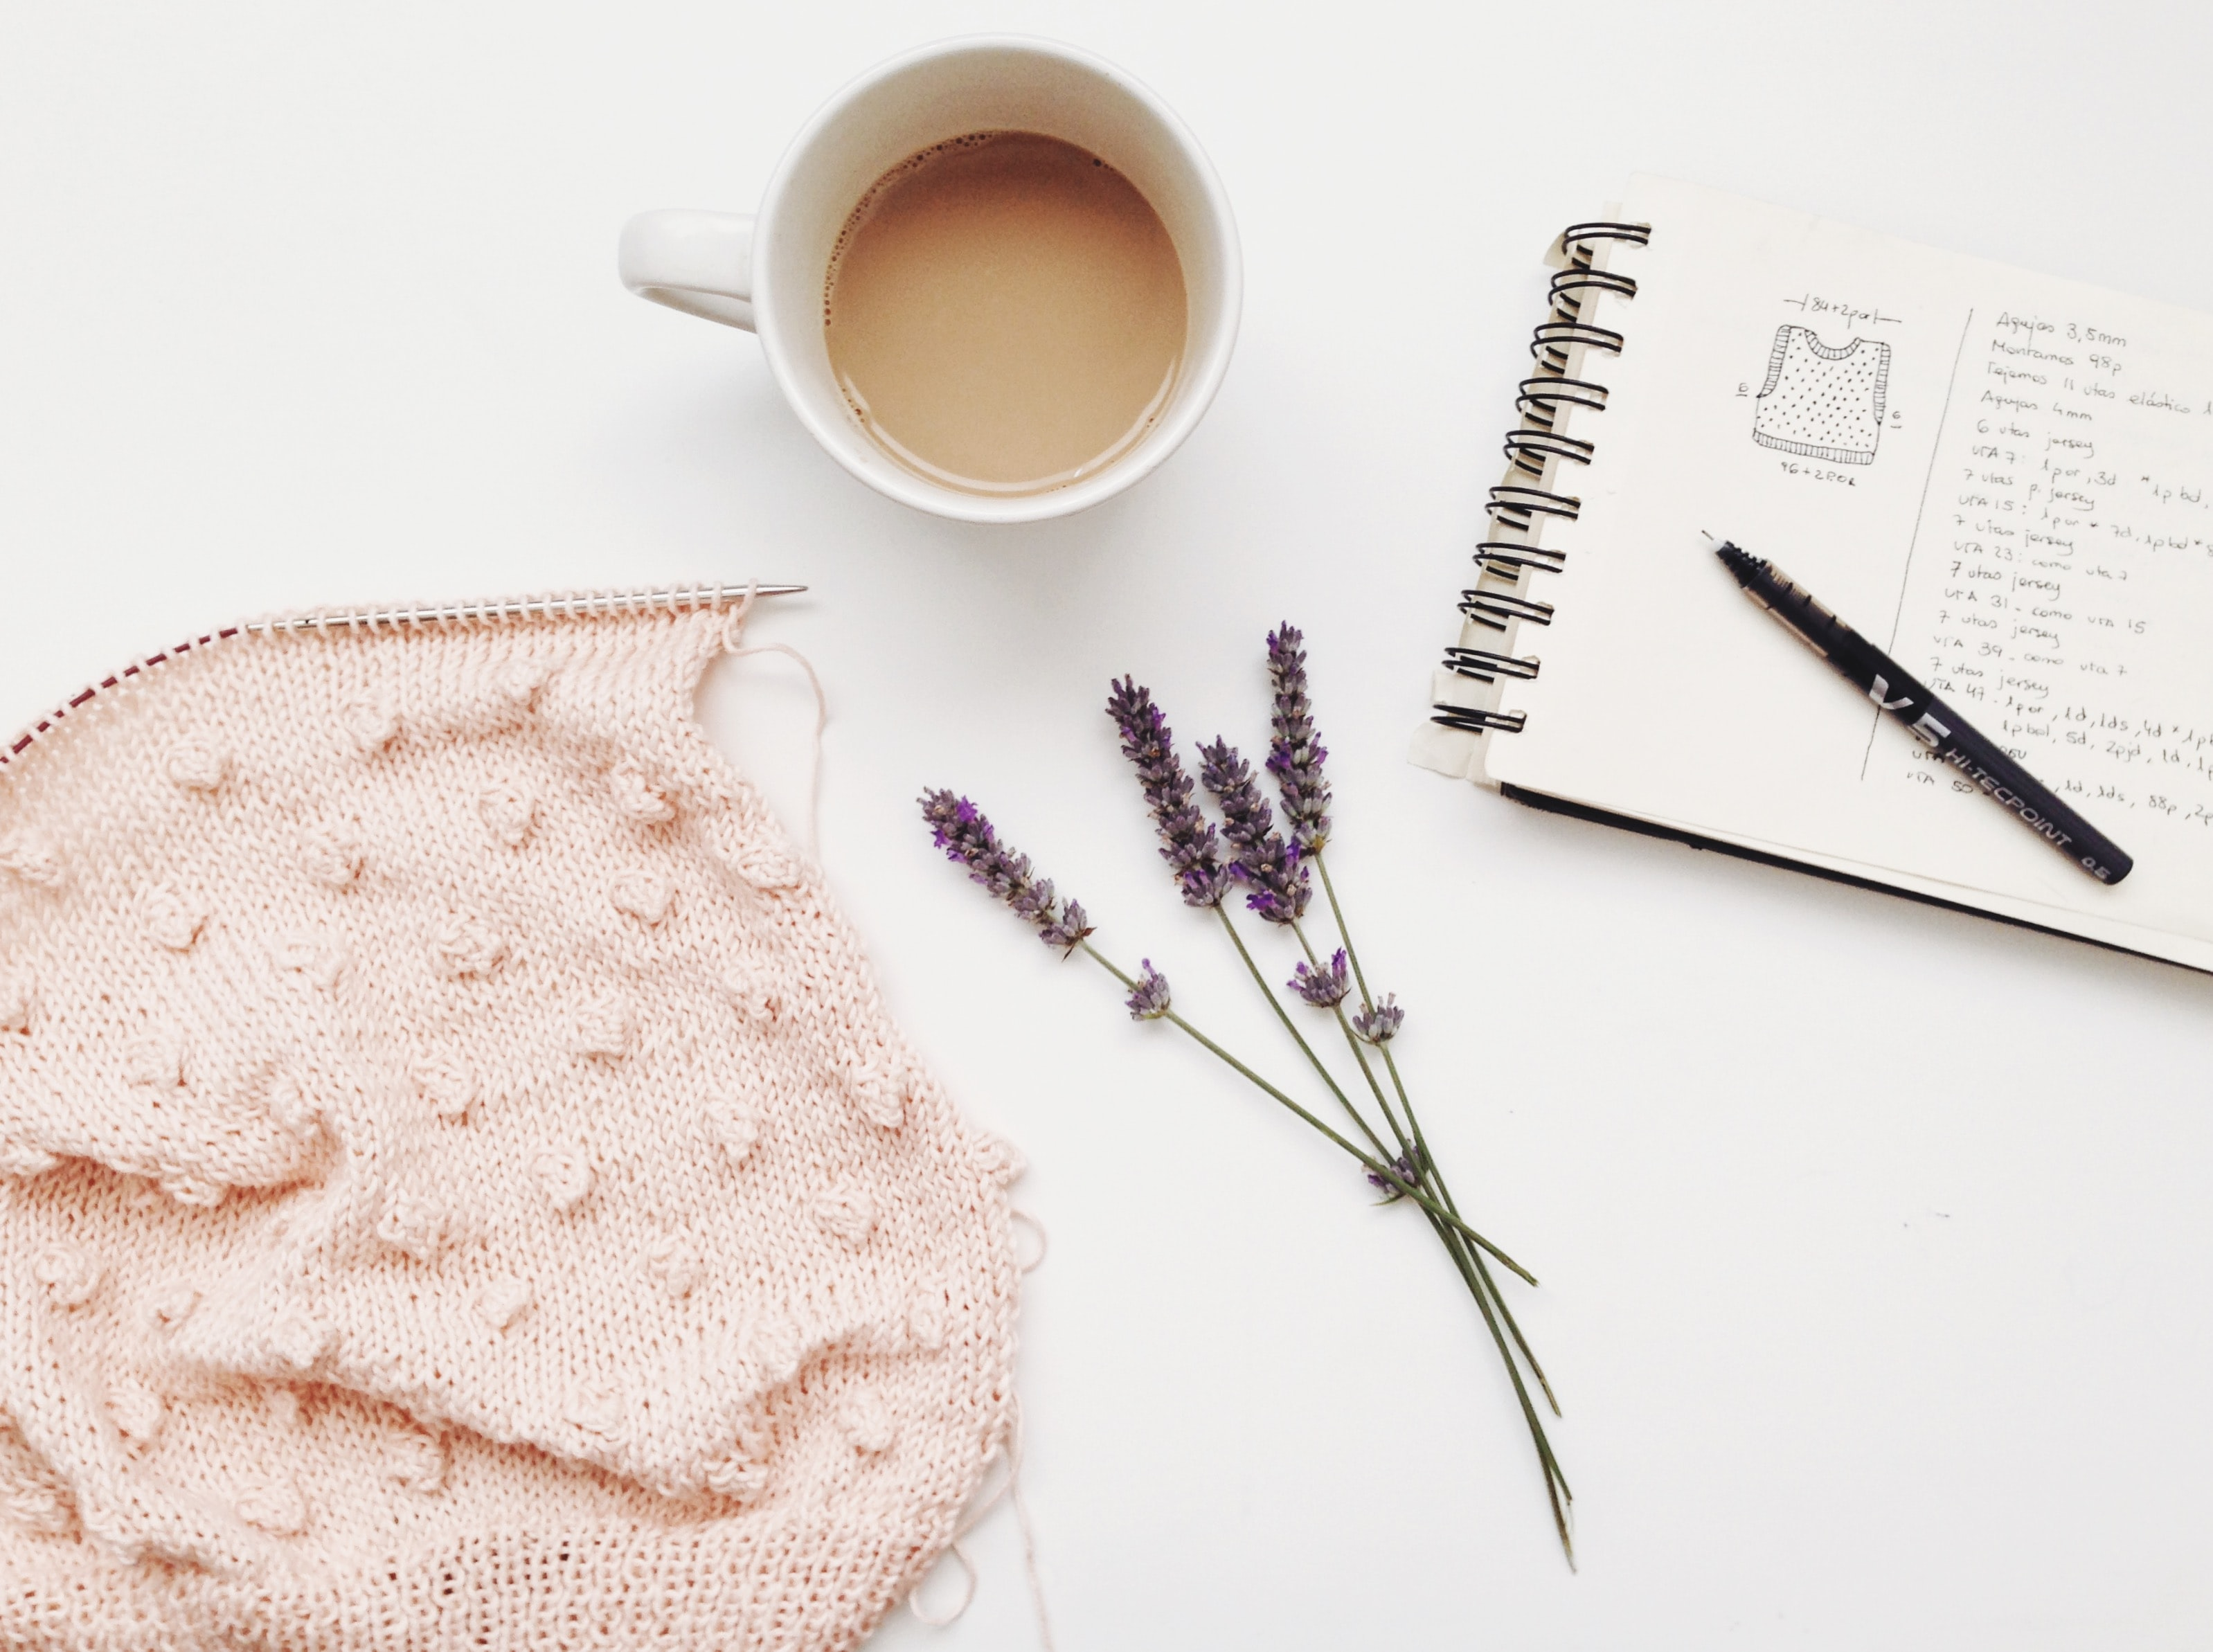 A bunch of lavender flowers next to a cup of coffee and a notepad on a white surface